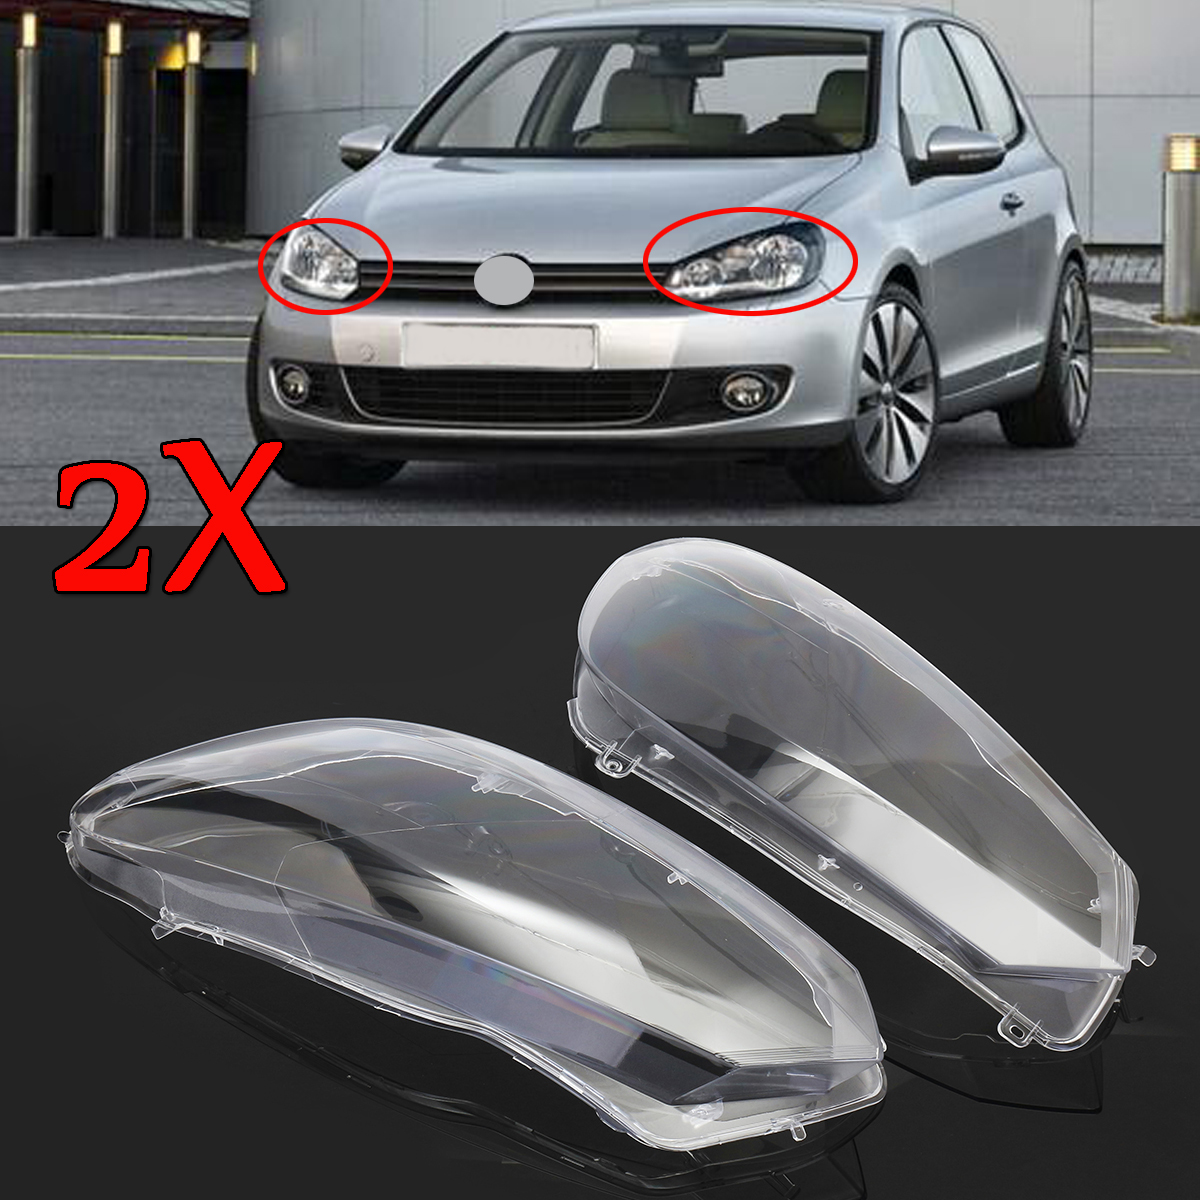 2Pcs Car Clear Headlight Headlamp Lenses Dust Cover Shell Plastic For VW For Volkswagen Golf 6 2010-2014 Front Head Light Cover2Pcs Car Clear Headlight Headlamp Lenses Dust Cover Shell Plastic For VW For Volkswagen Golf 6 2010-2014 Front Head Light Cover